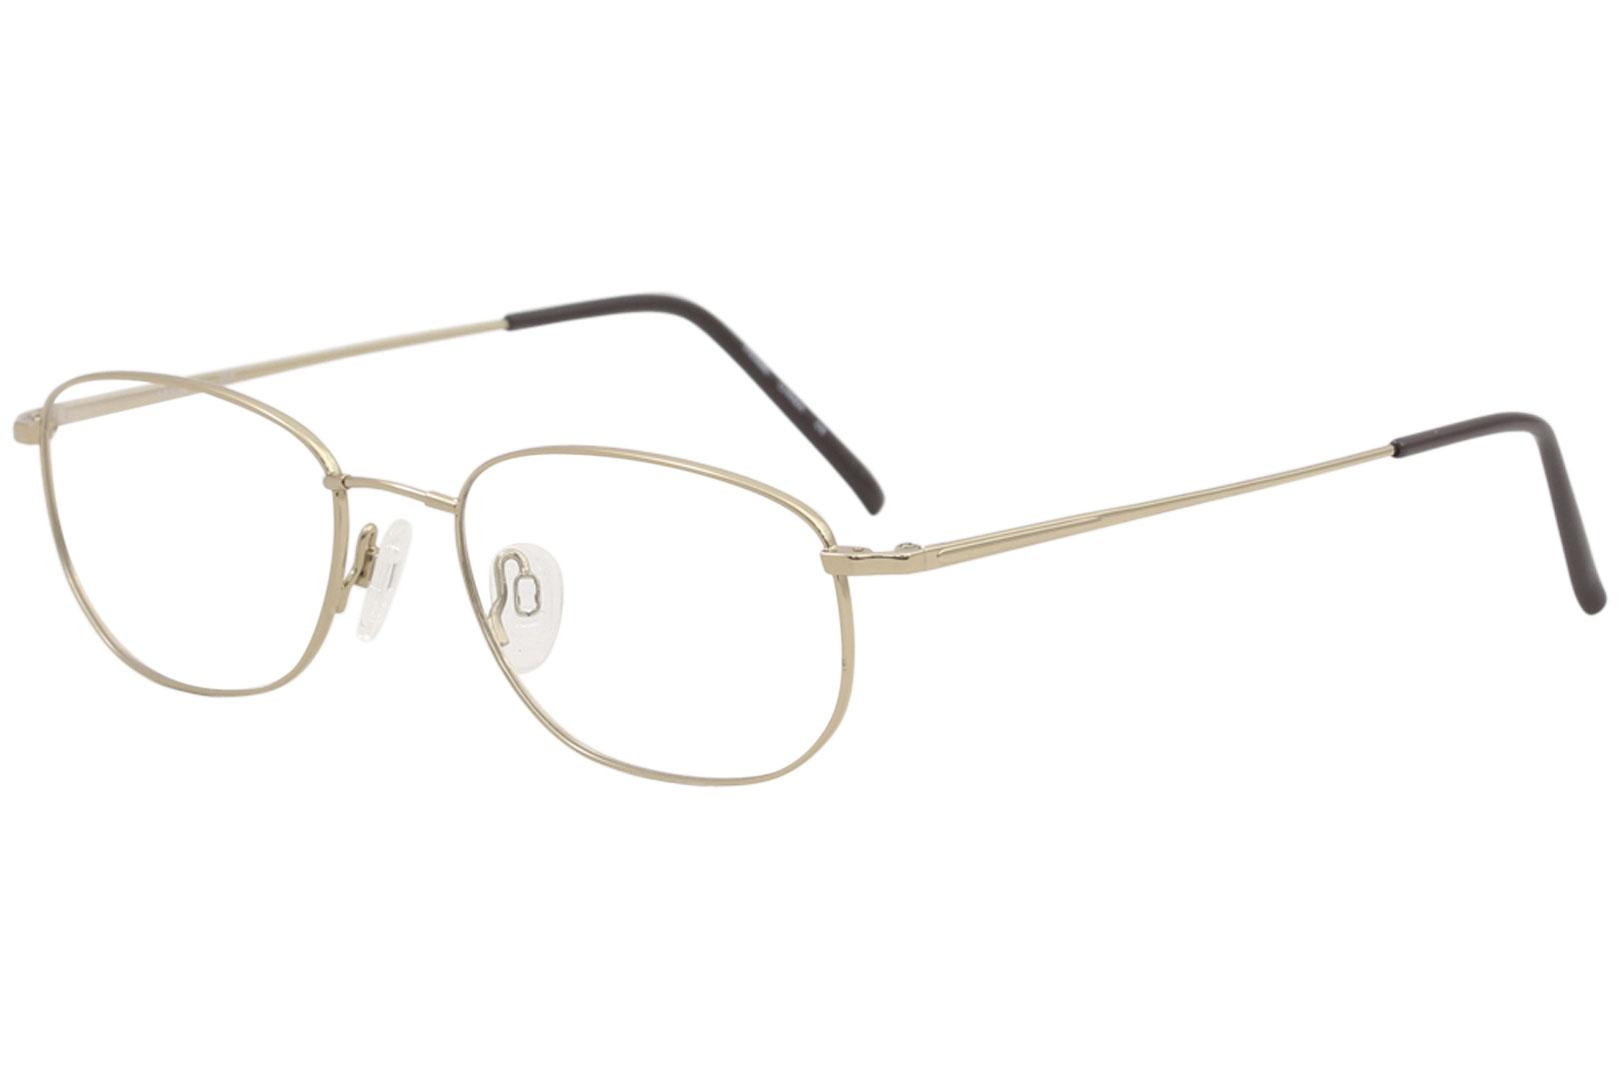 Image of Flexon Men's Eyeglasses 600 714 GEP/Gold Full Rim Optical Frame 54mm - GEP/Gold   714 - Lens 54 Bridge 18 Temple 145mm